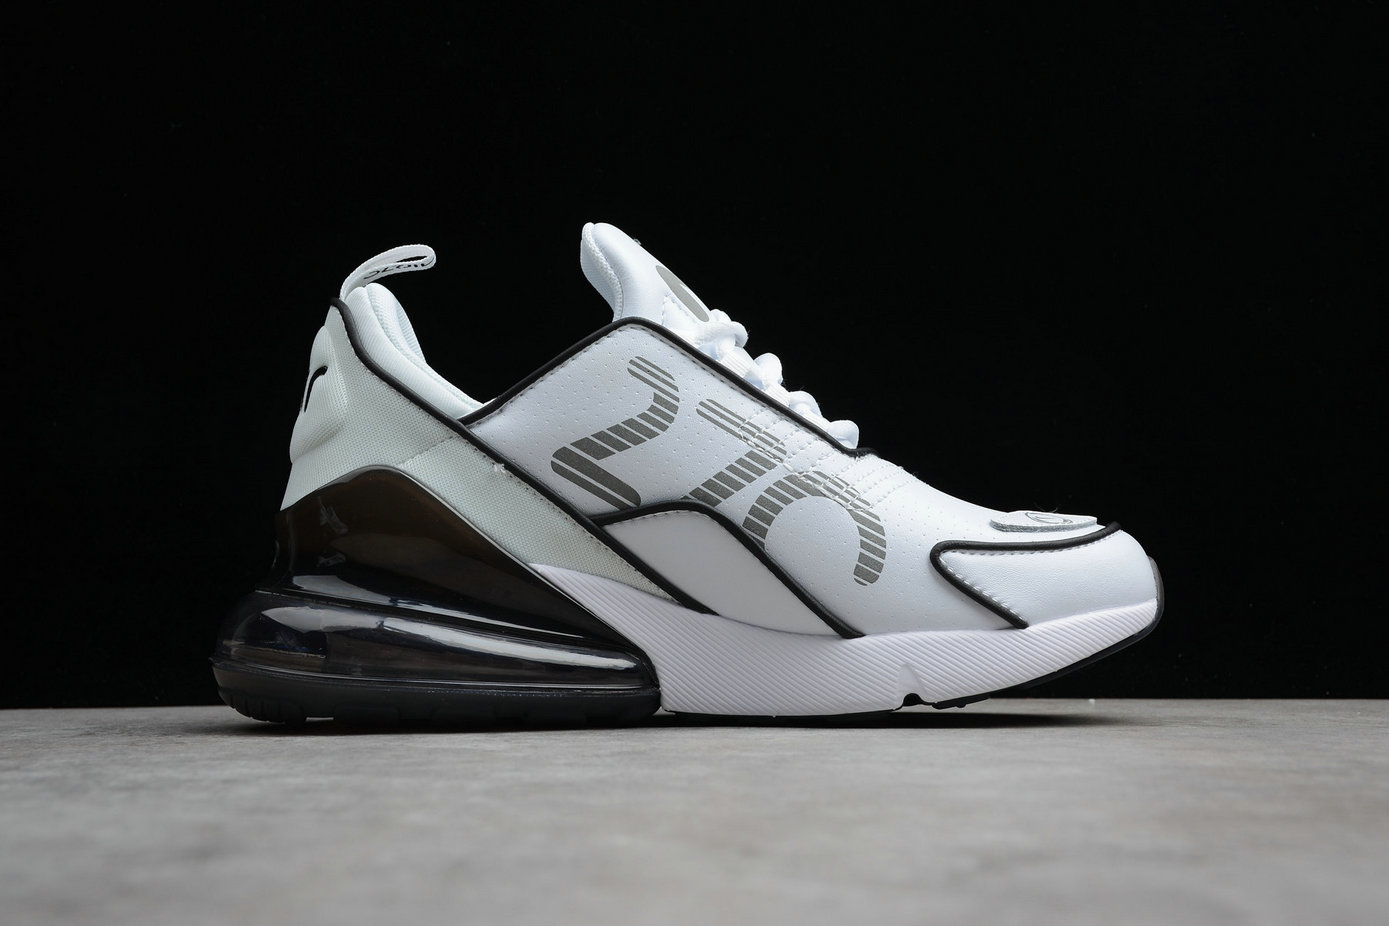 Cheap Wholesale Nike Air Max 270 Flyknit AH8060-100 Mens Running Shoes White Black Blanc Noir- www.wholesaleflyknit.com